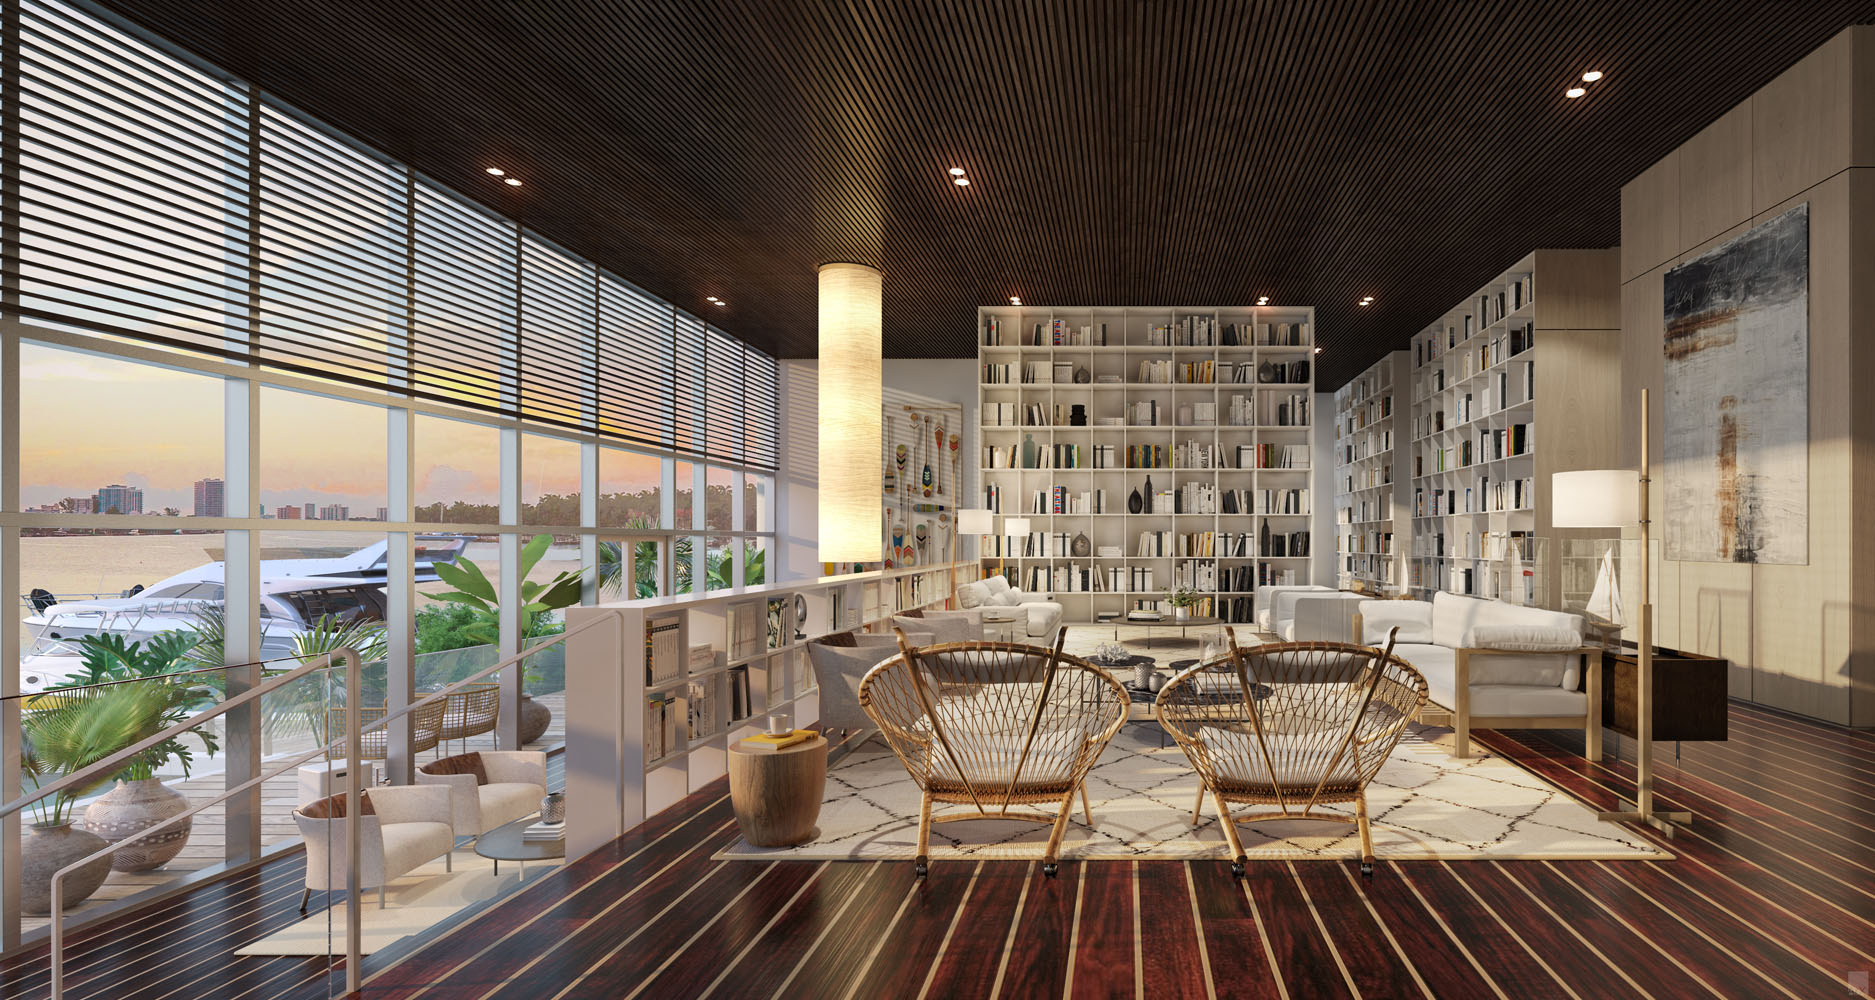 Interior view of Monaco Yacht Club residence library with window view of the ocean. Has dark wood floors and bookshelves.